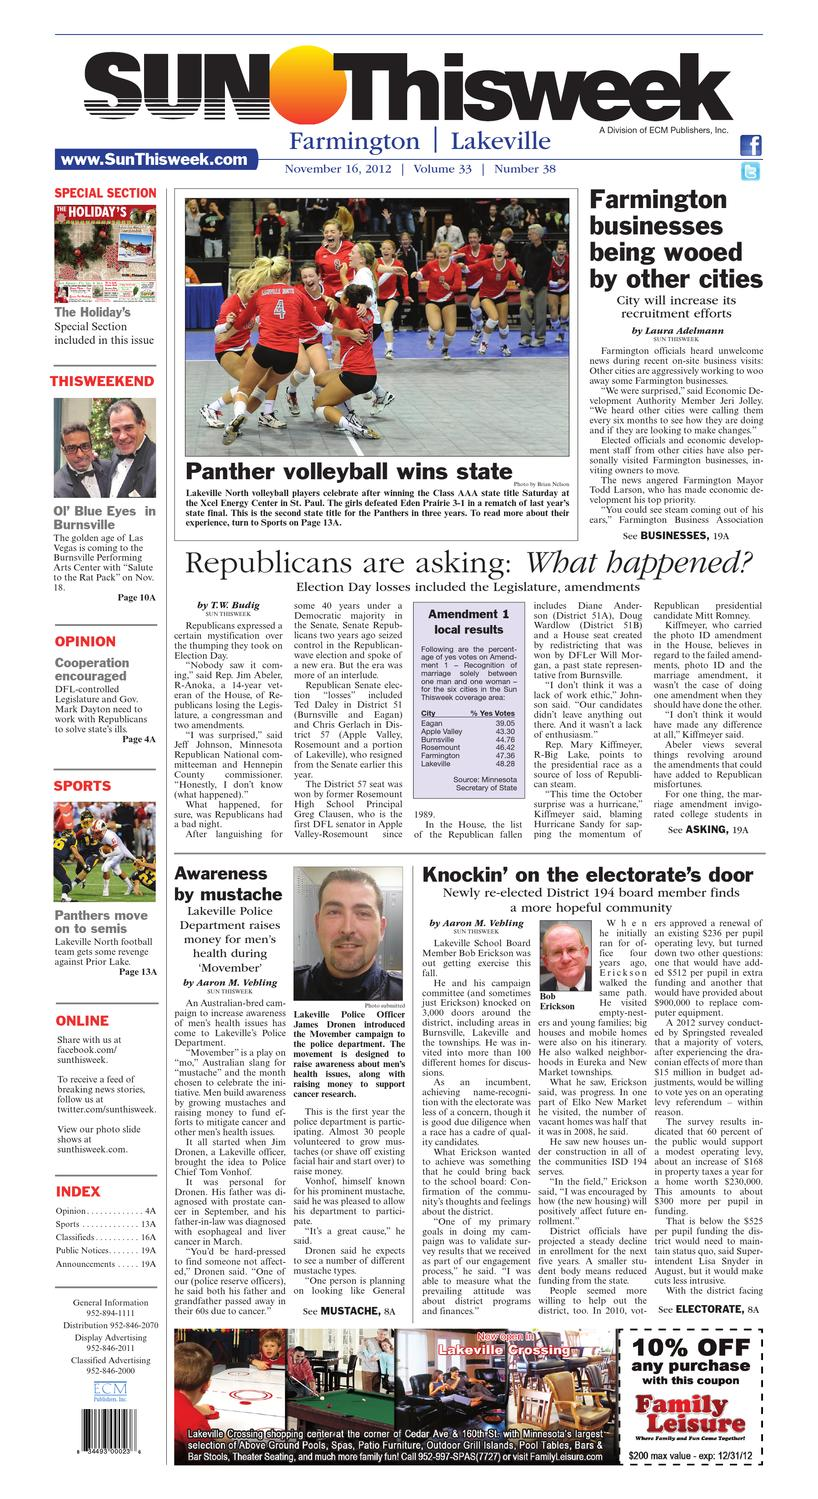 Sun thisweek farmington and lakeville by thisweek newspapersdakota sun thisweek farmington and lakeville by thisweek newspapersdakota county tribune business weekly issuu fandeluxe Image collections